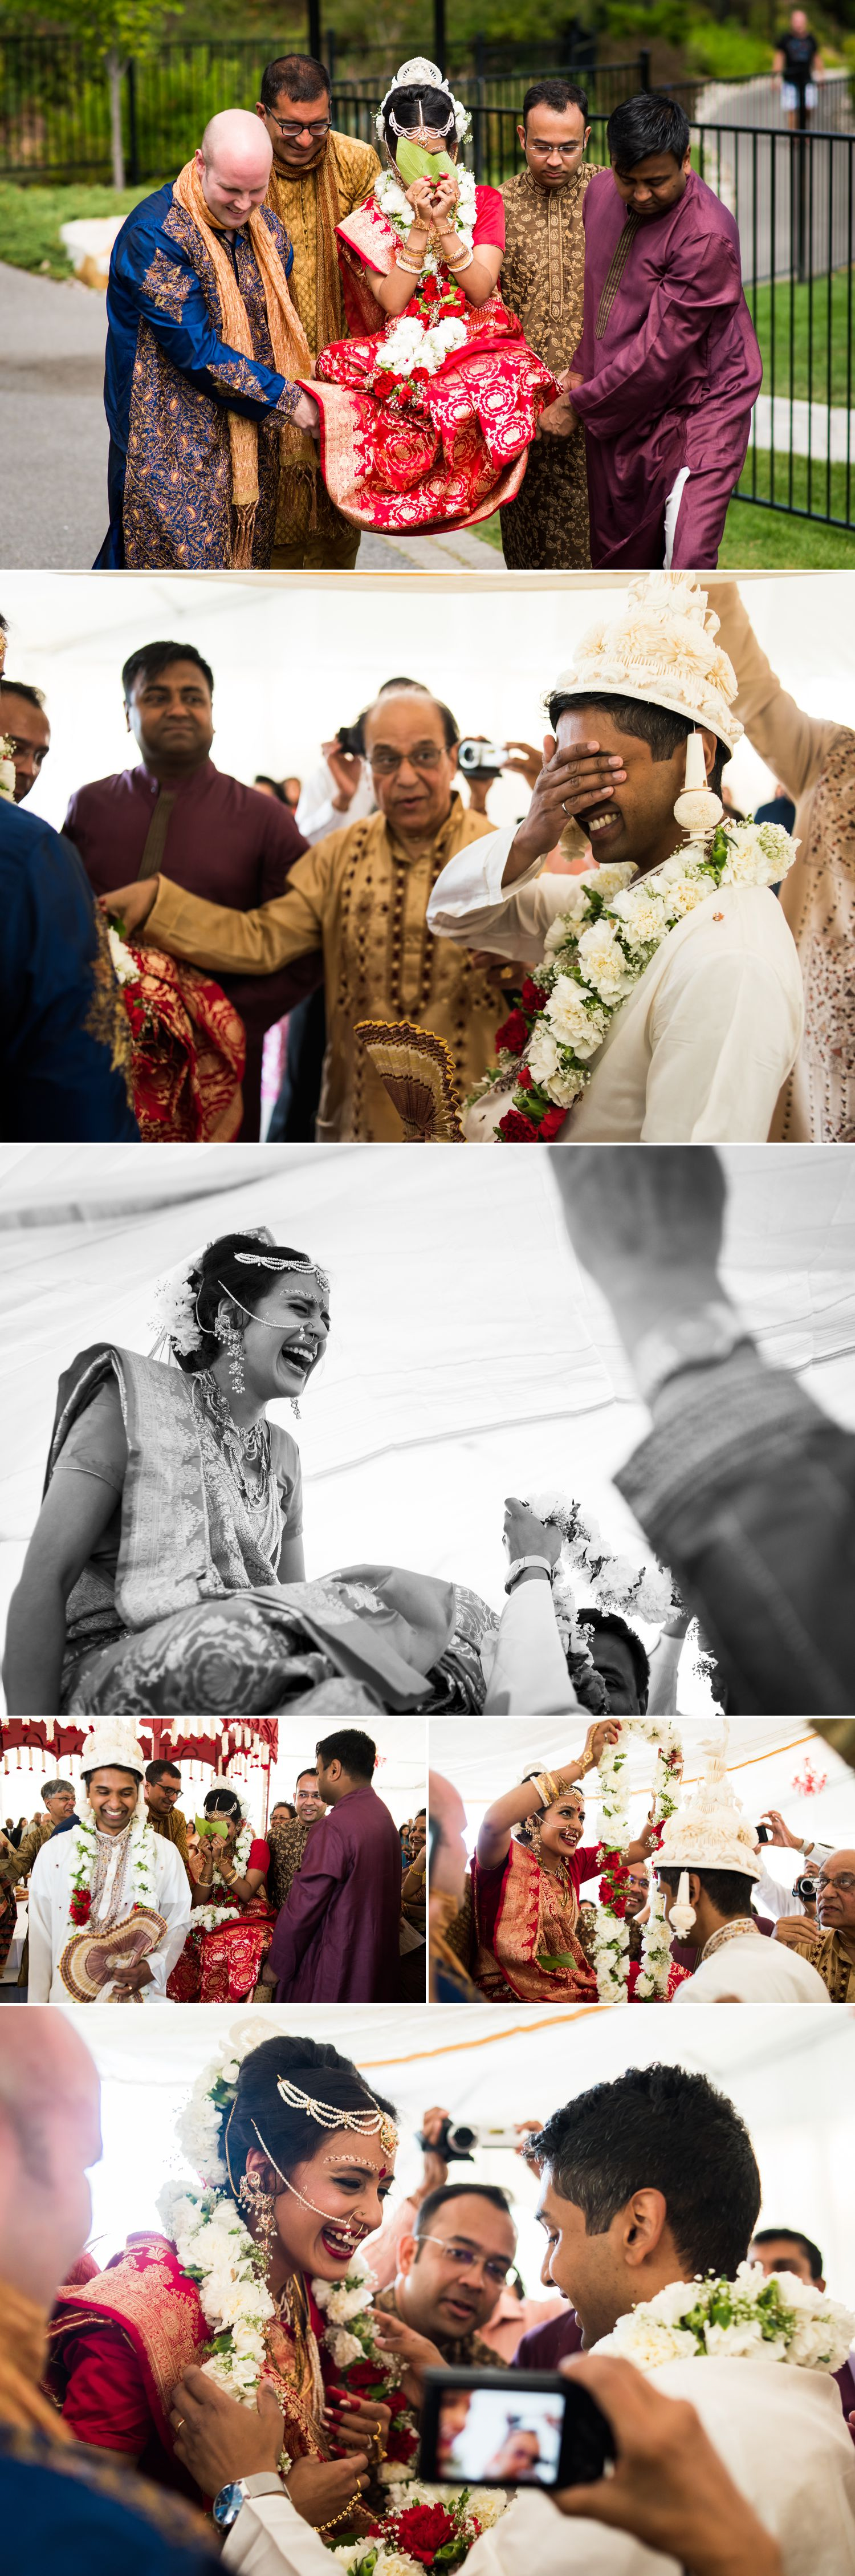 The bride during the traditional Indian wedding pre-ceremony rituals at the Brookstreet Hotel & Resort in Kanata